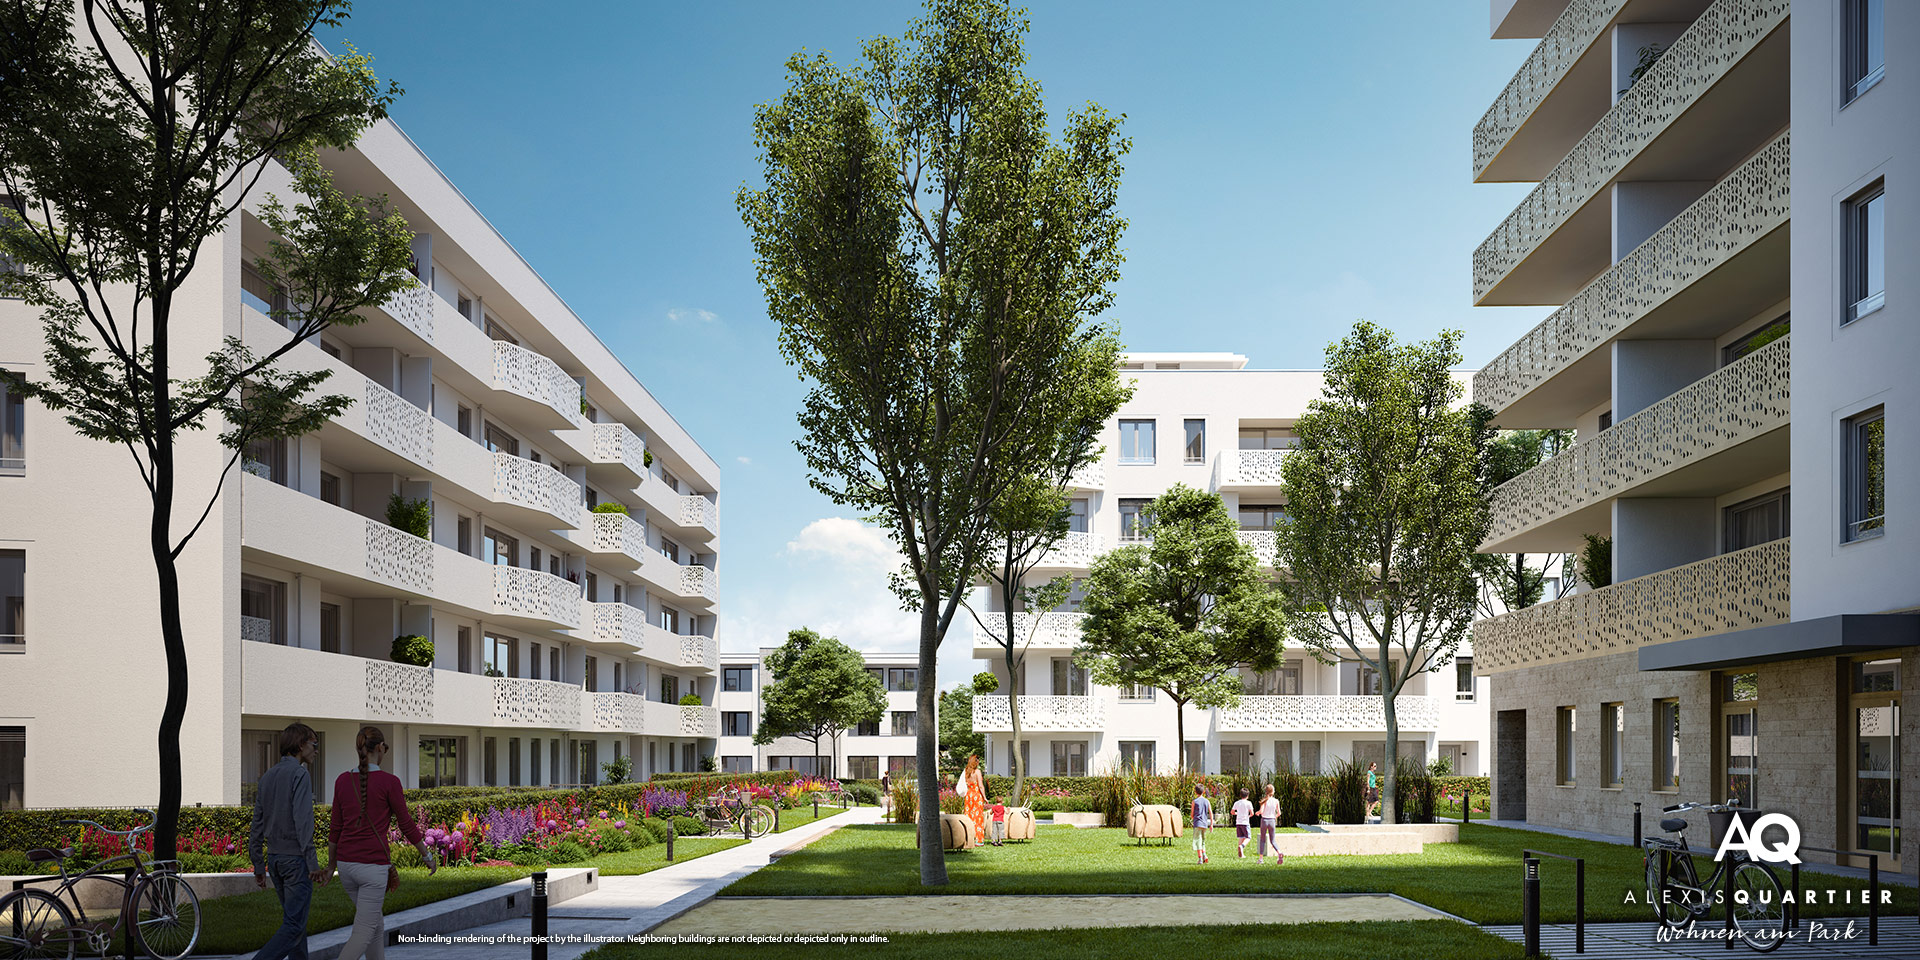 ALEXISQUARTIER in Munich-Perlach: Sales officially start today!